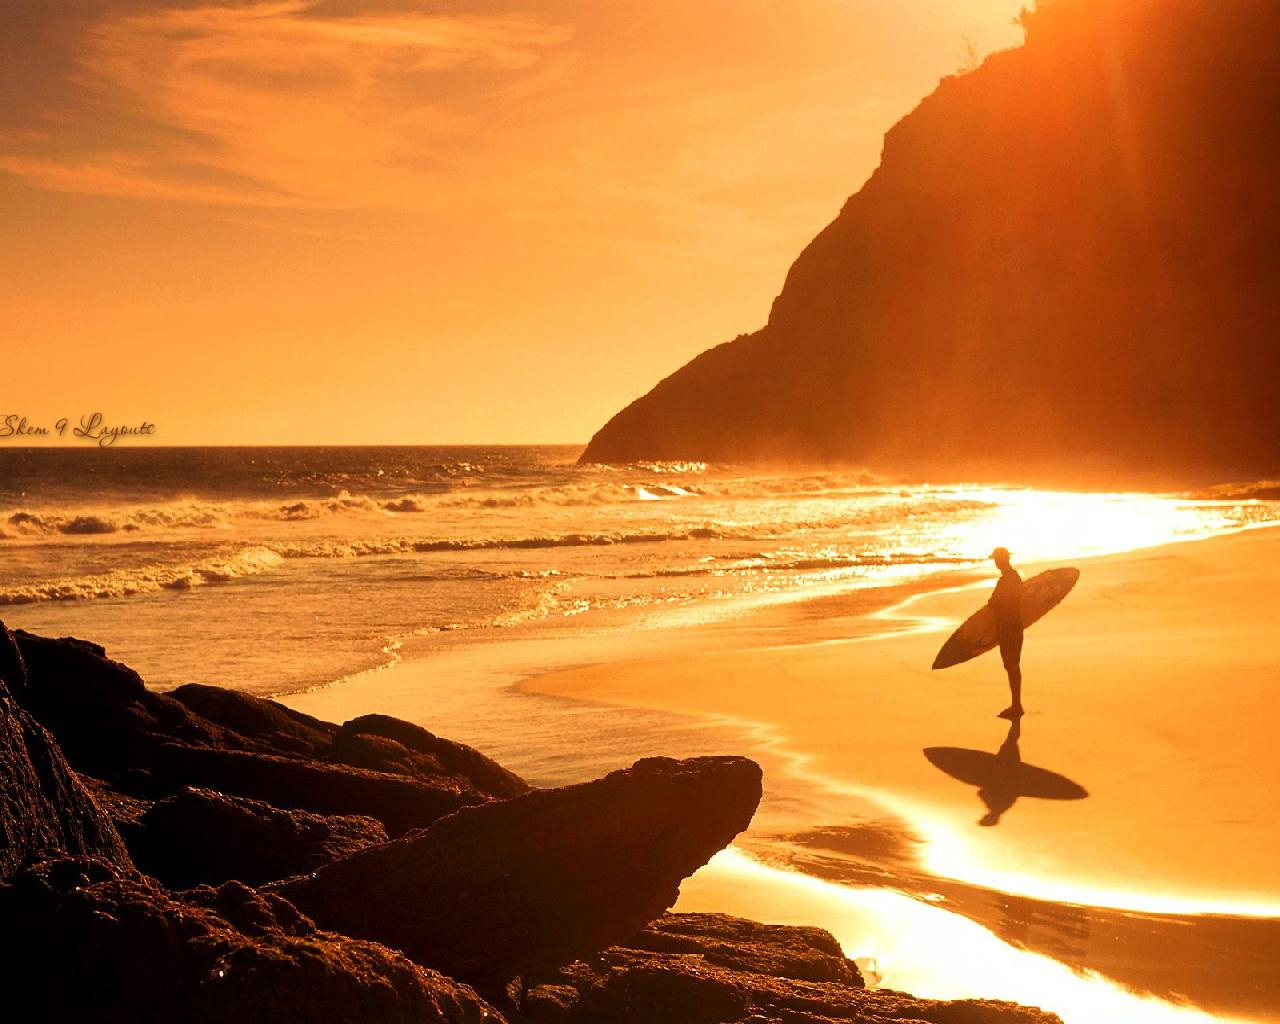 102337-Surfing-At-Sunset.jpg